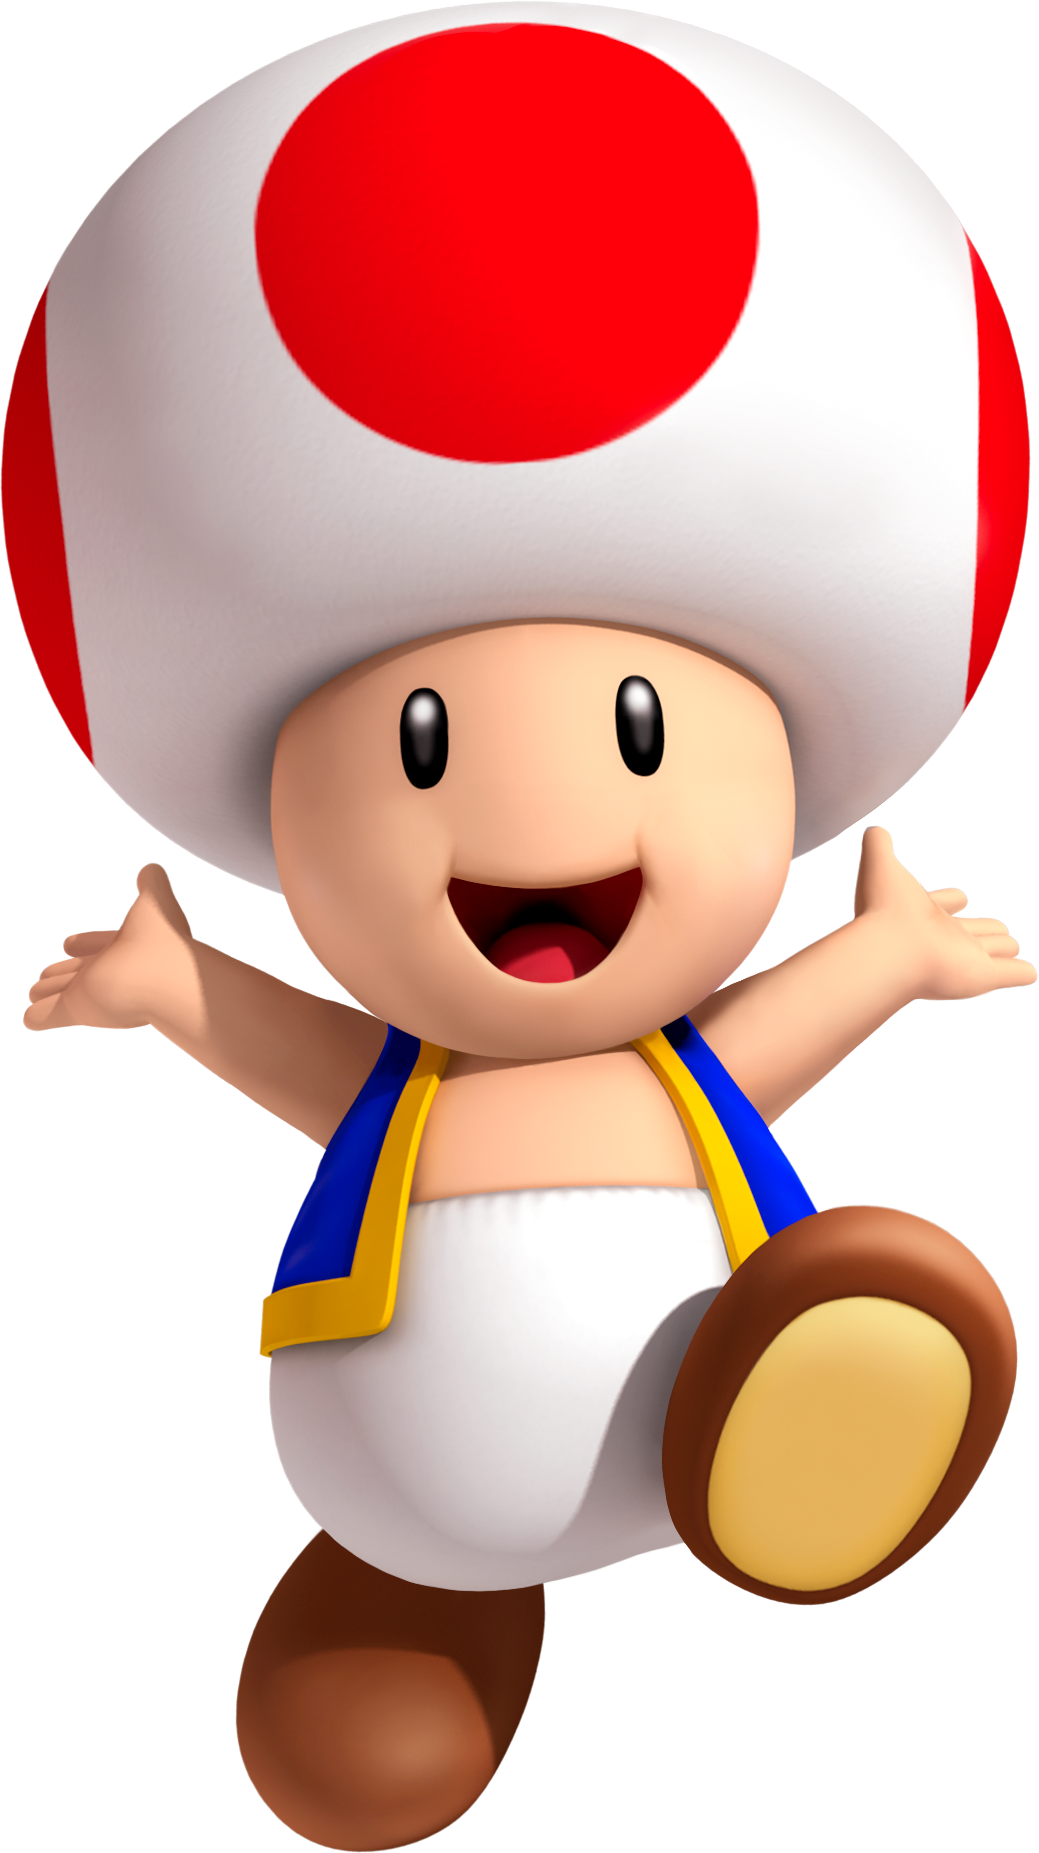 Name of toad if you lick it youcan die sorry, that